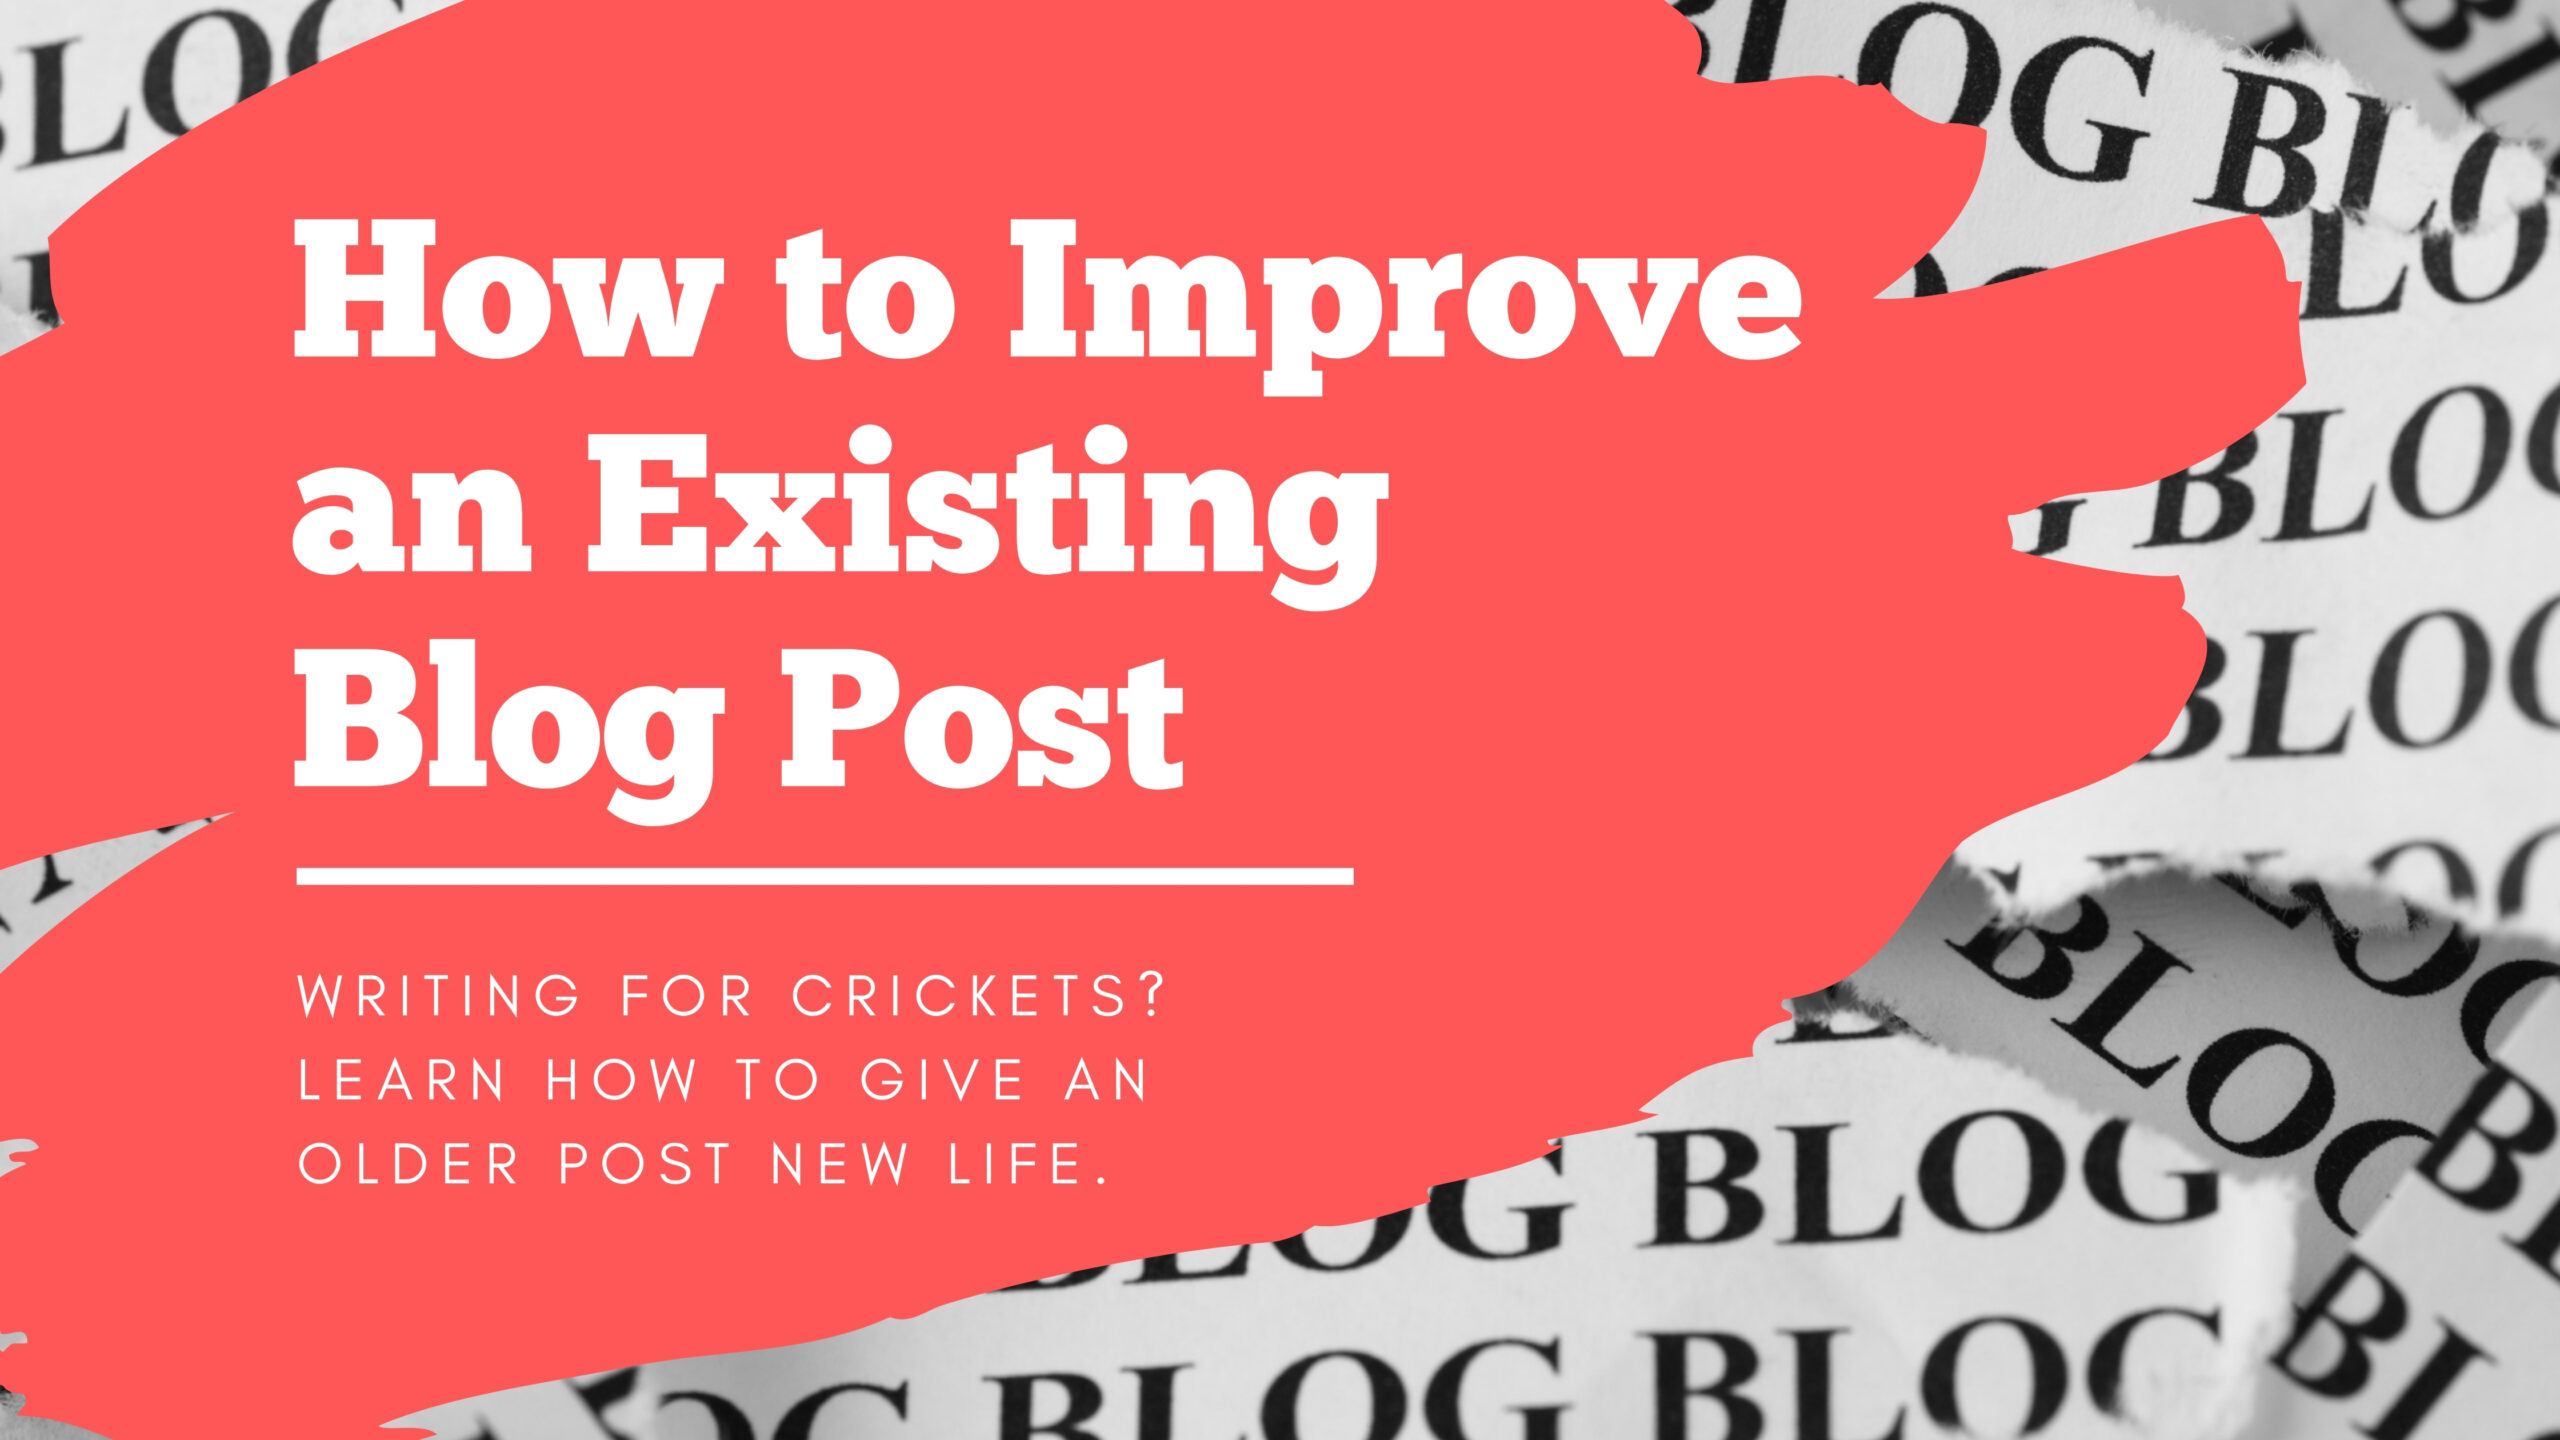 How to Improve an Existing Blog Post